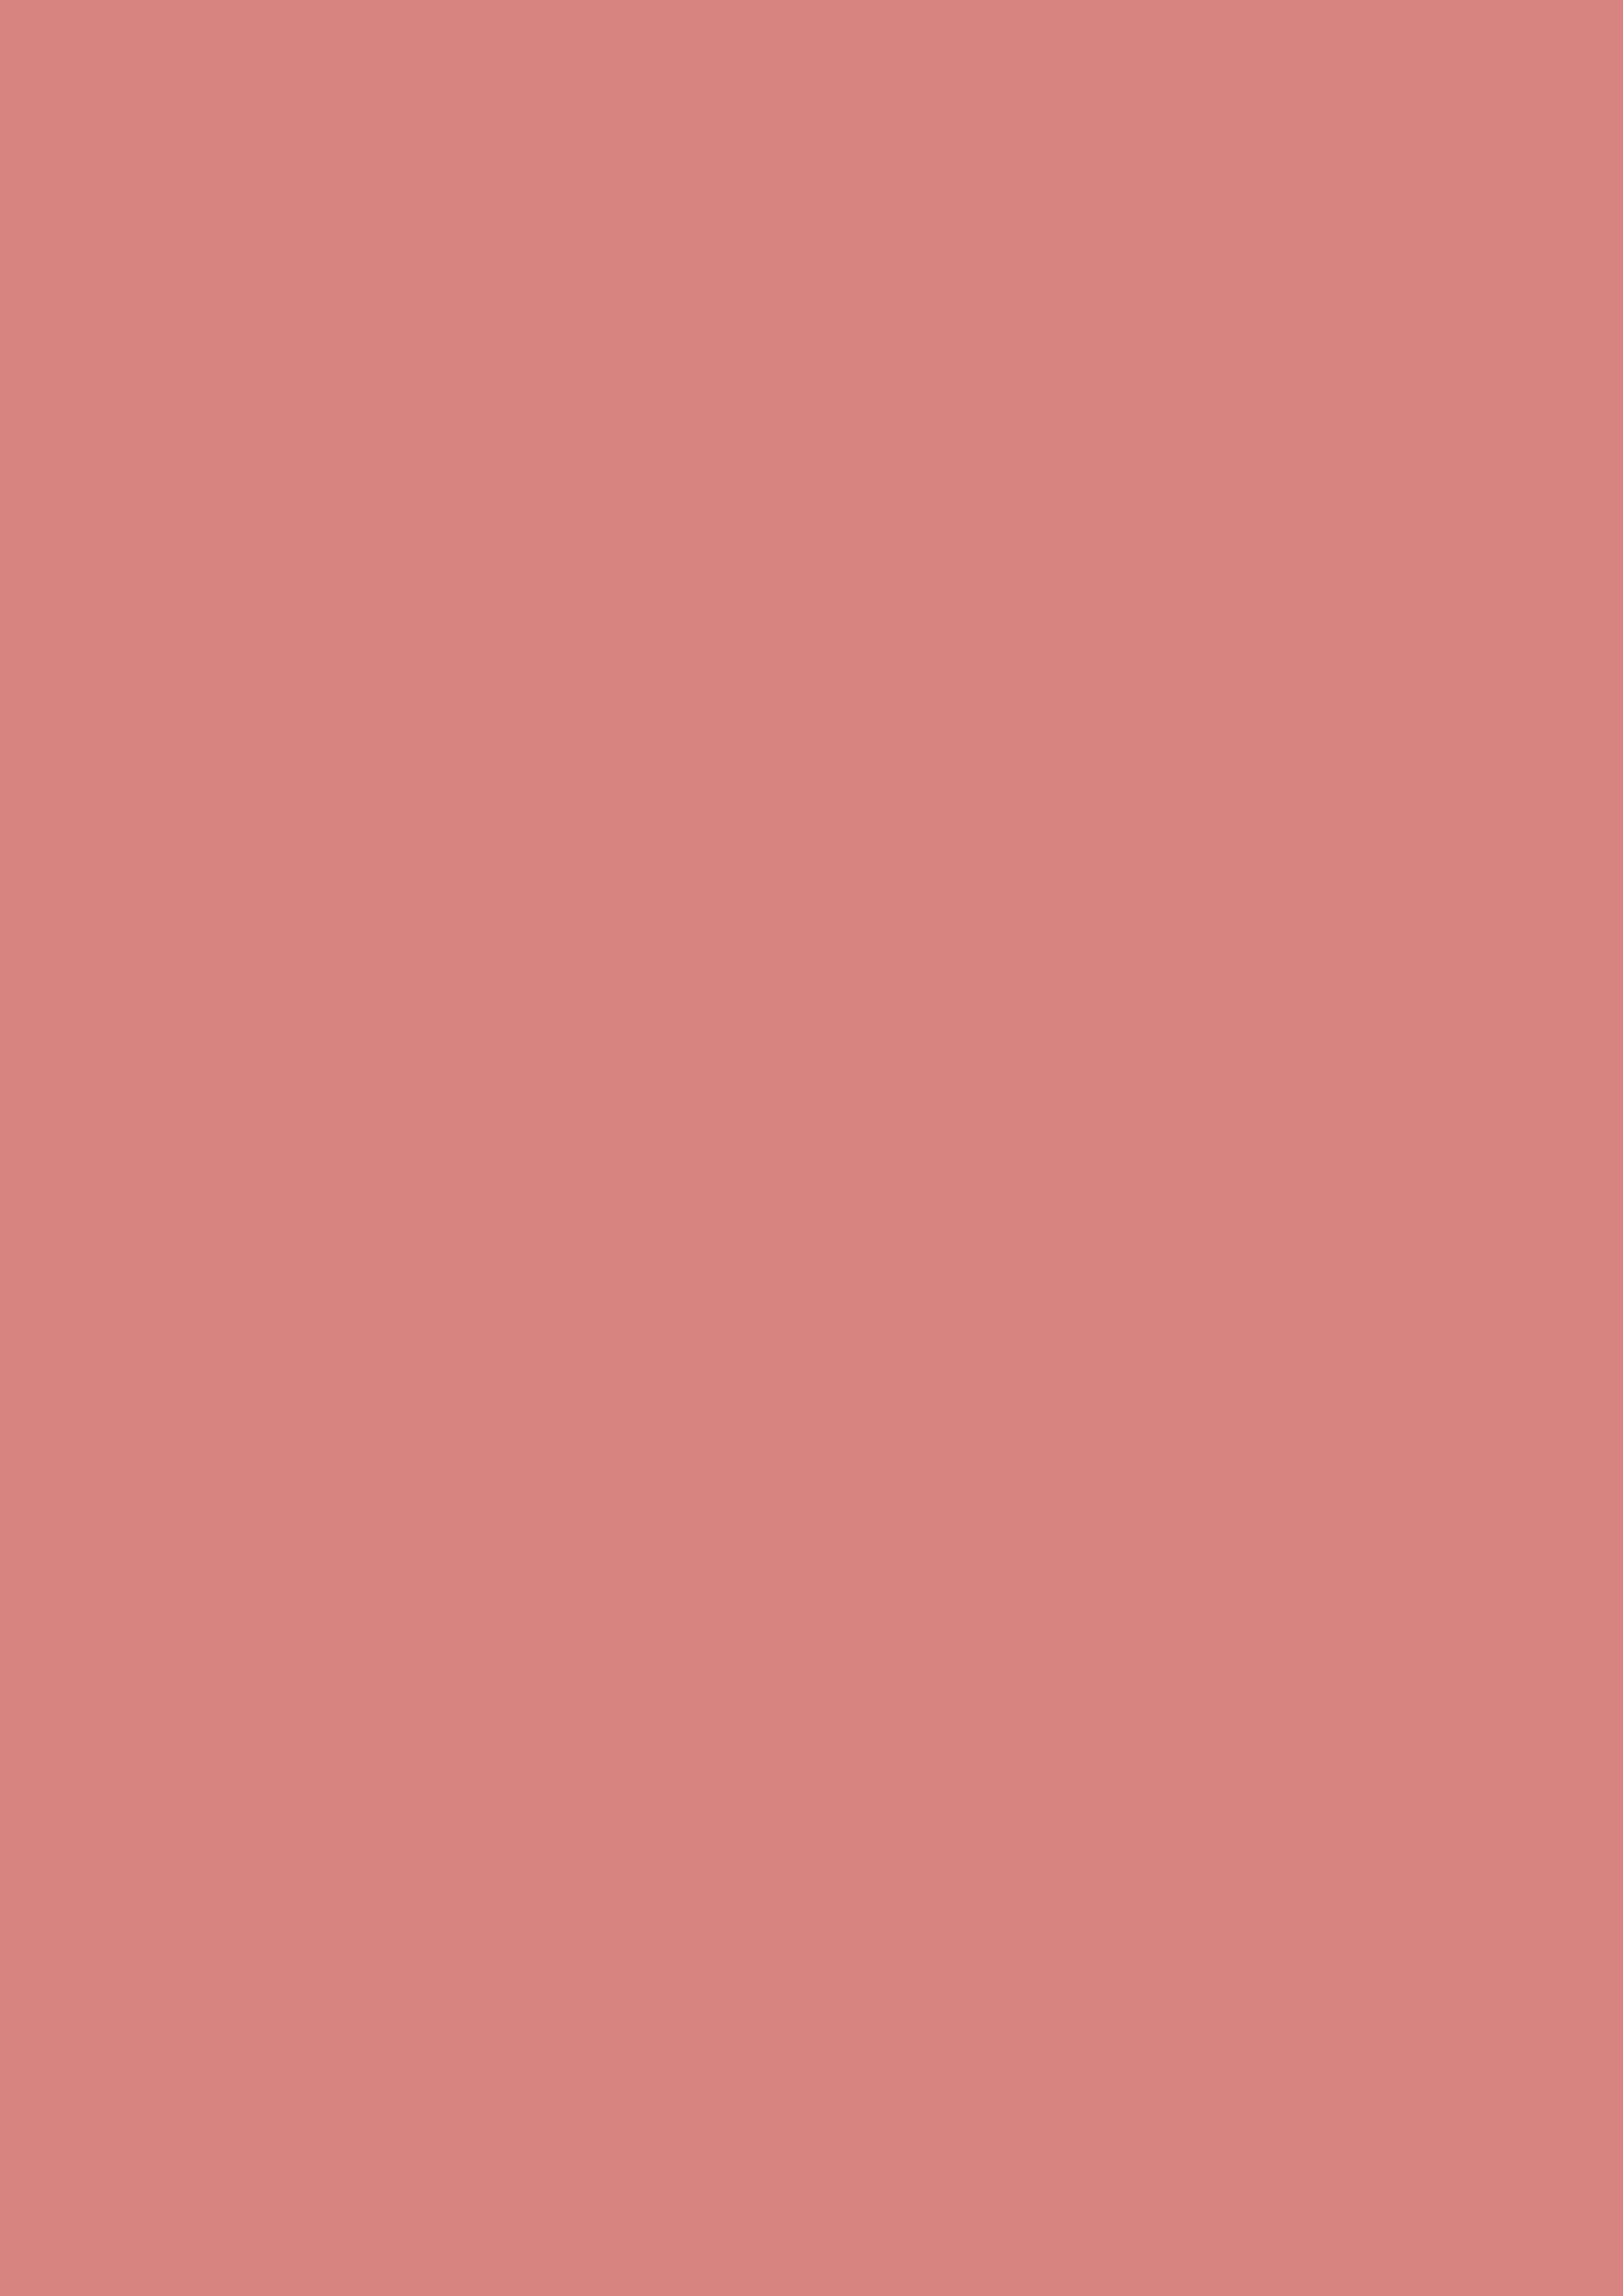 2480x3508 New York Pink Solid Color Background